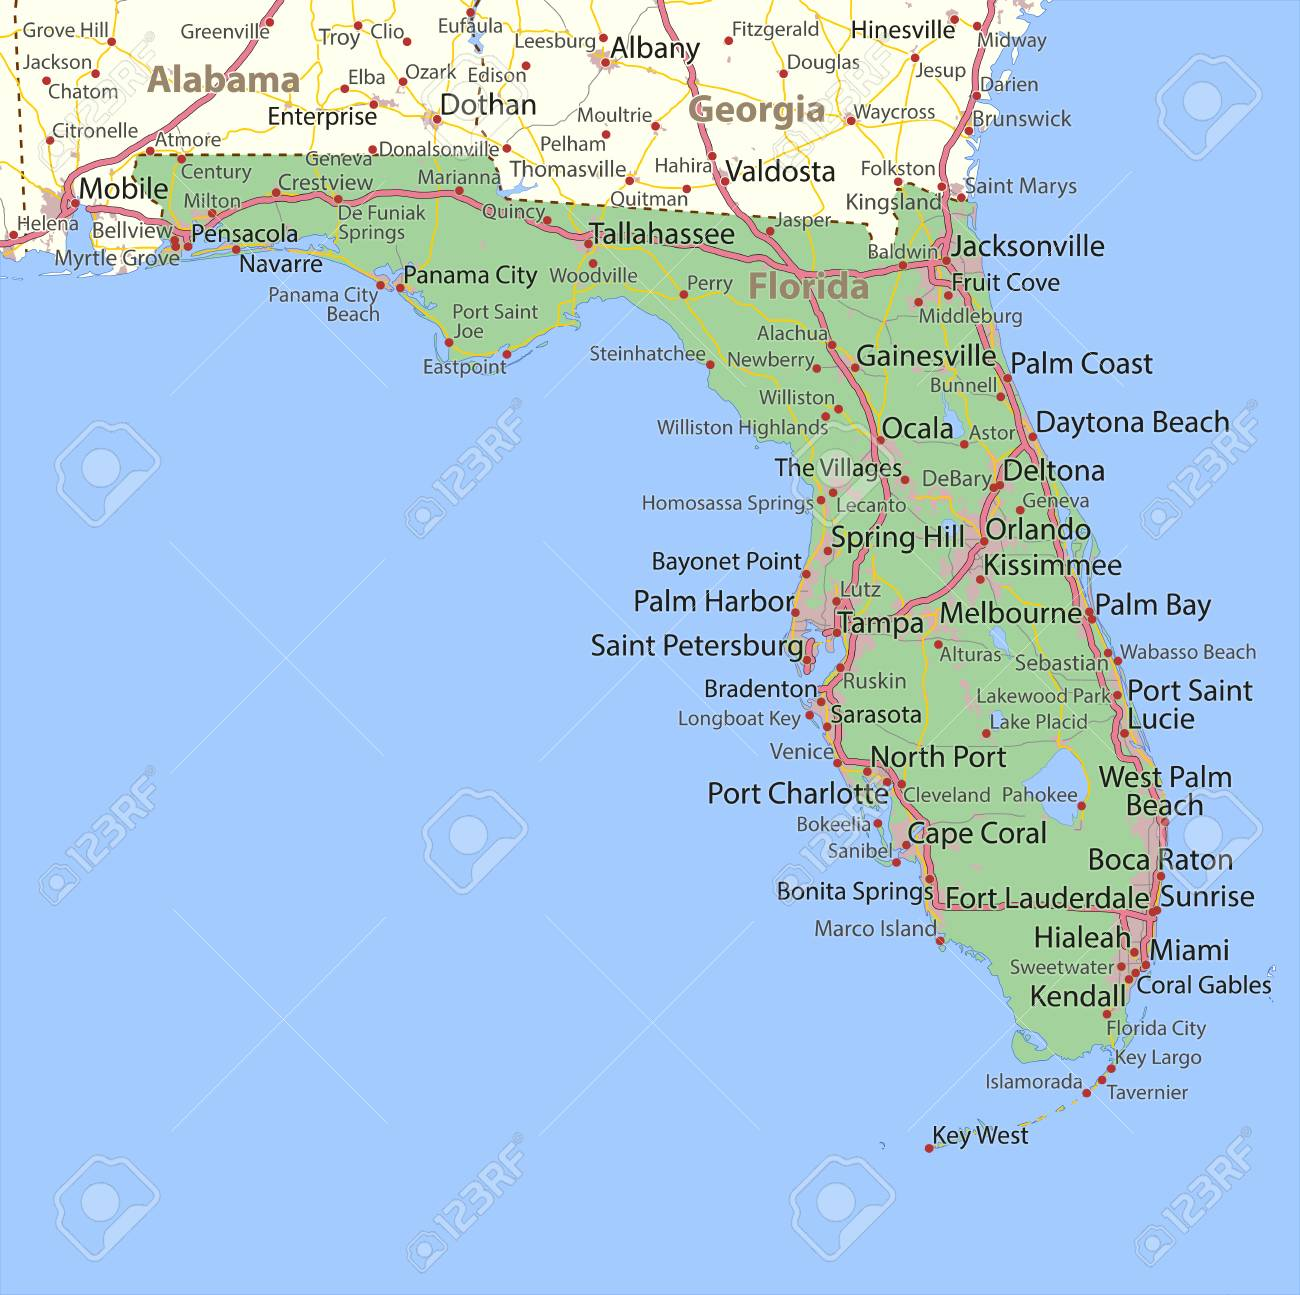 Map Of Sunrise Florida.Map Of Florida Shows State Borders Urban Areas Place Names